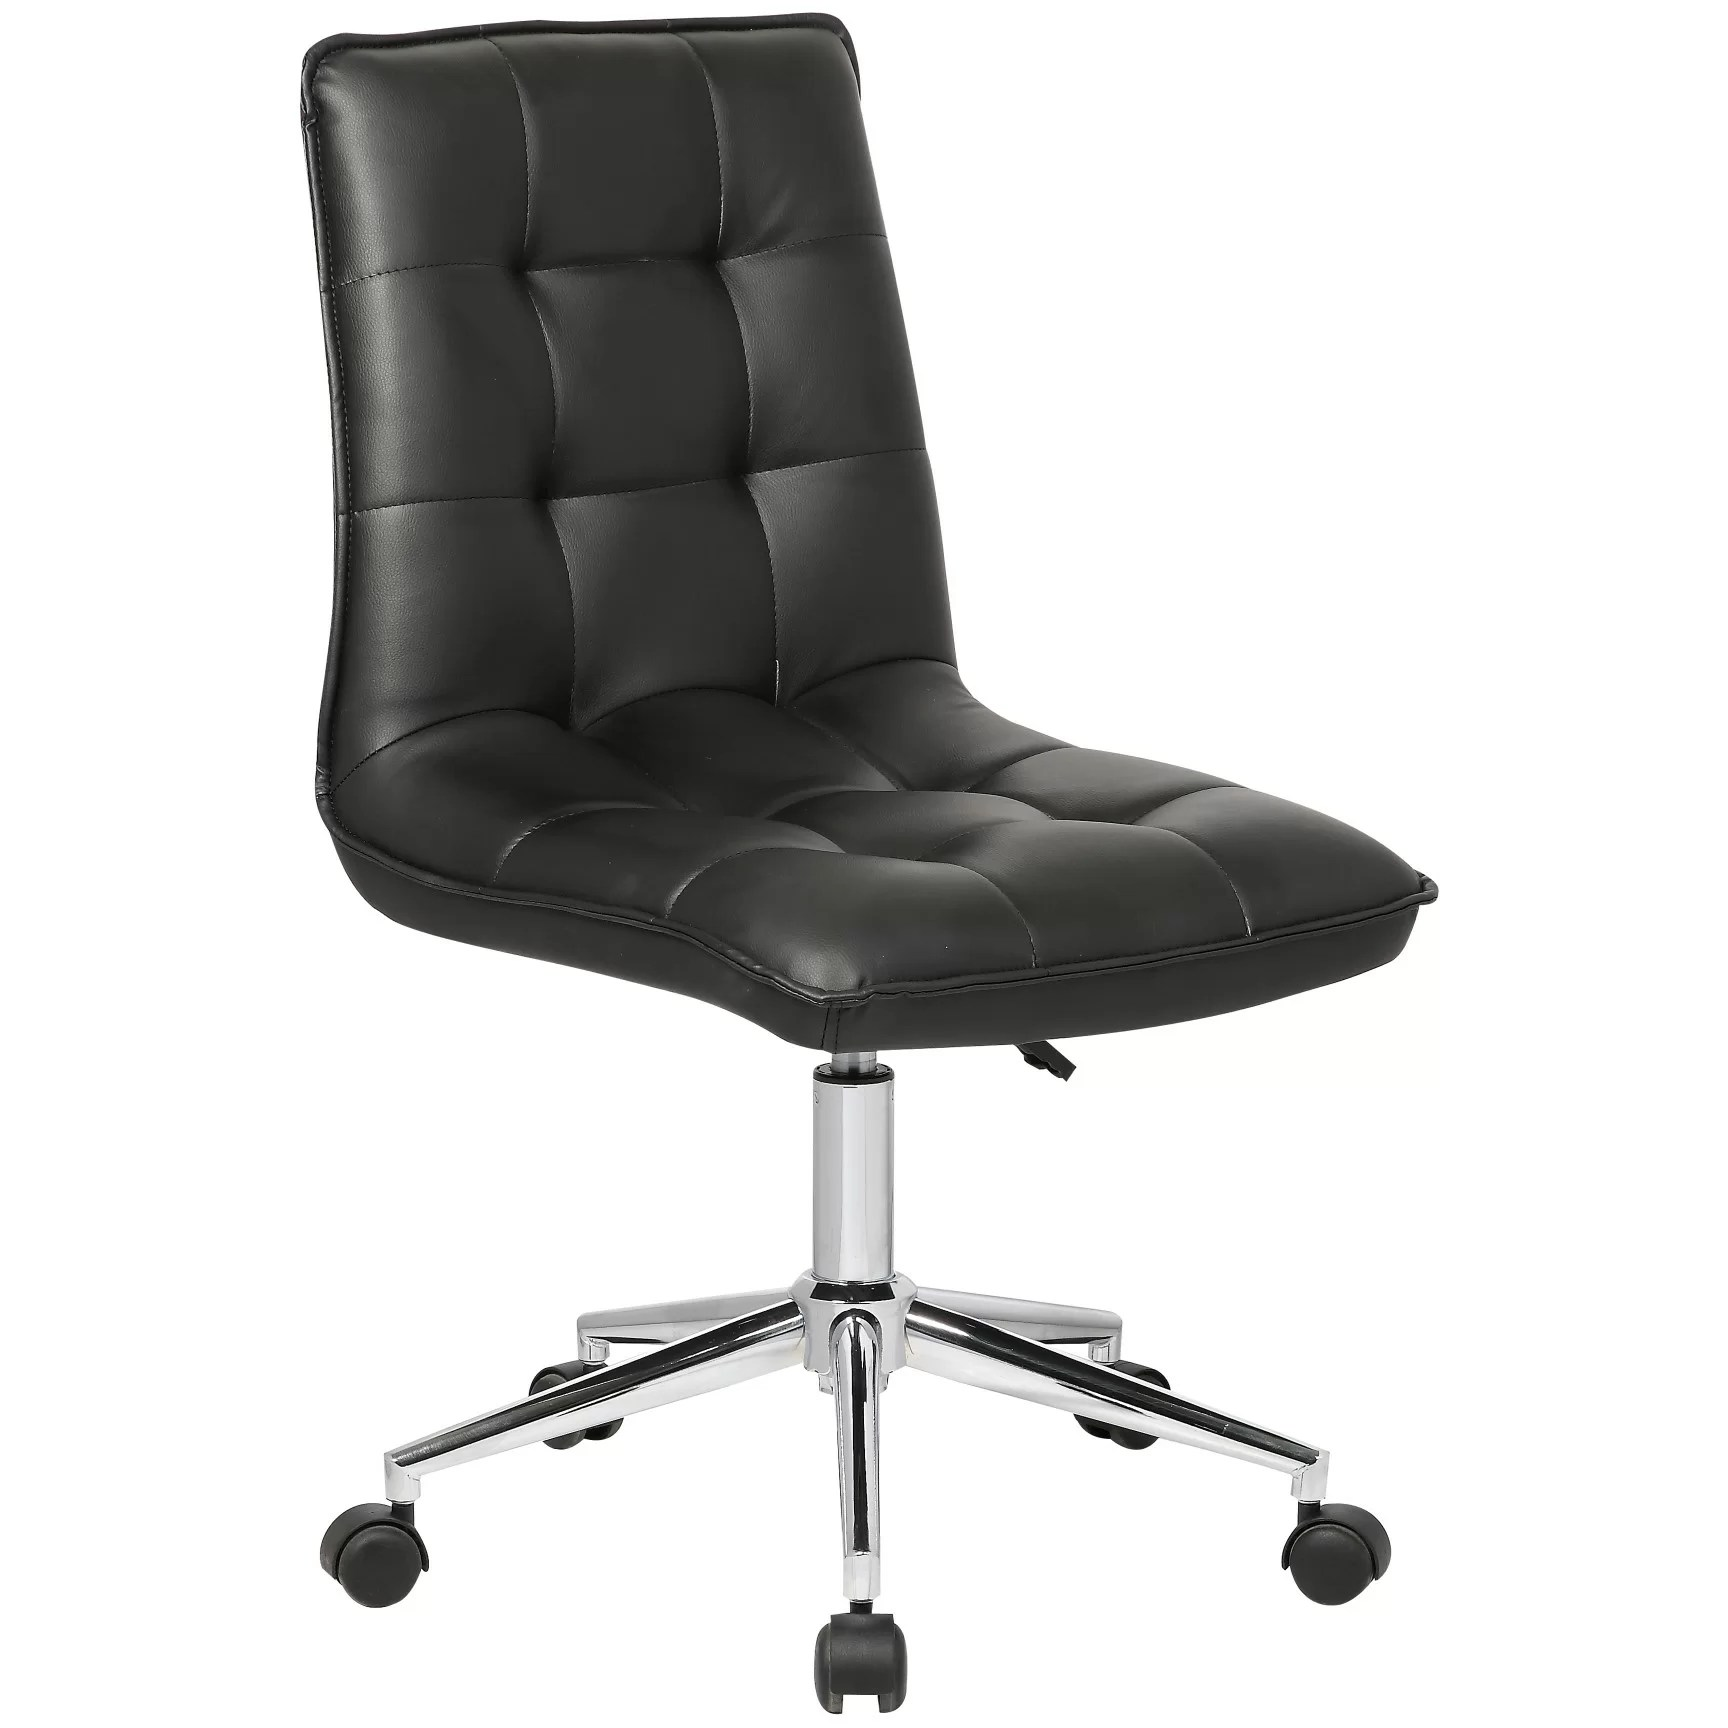 desk chair reviews computer white porthos home and wayfair